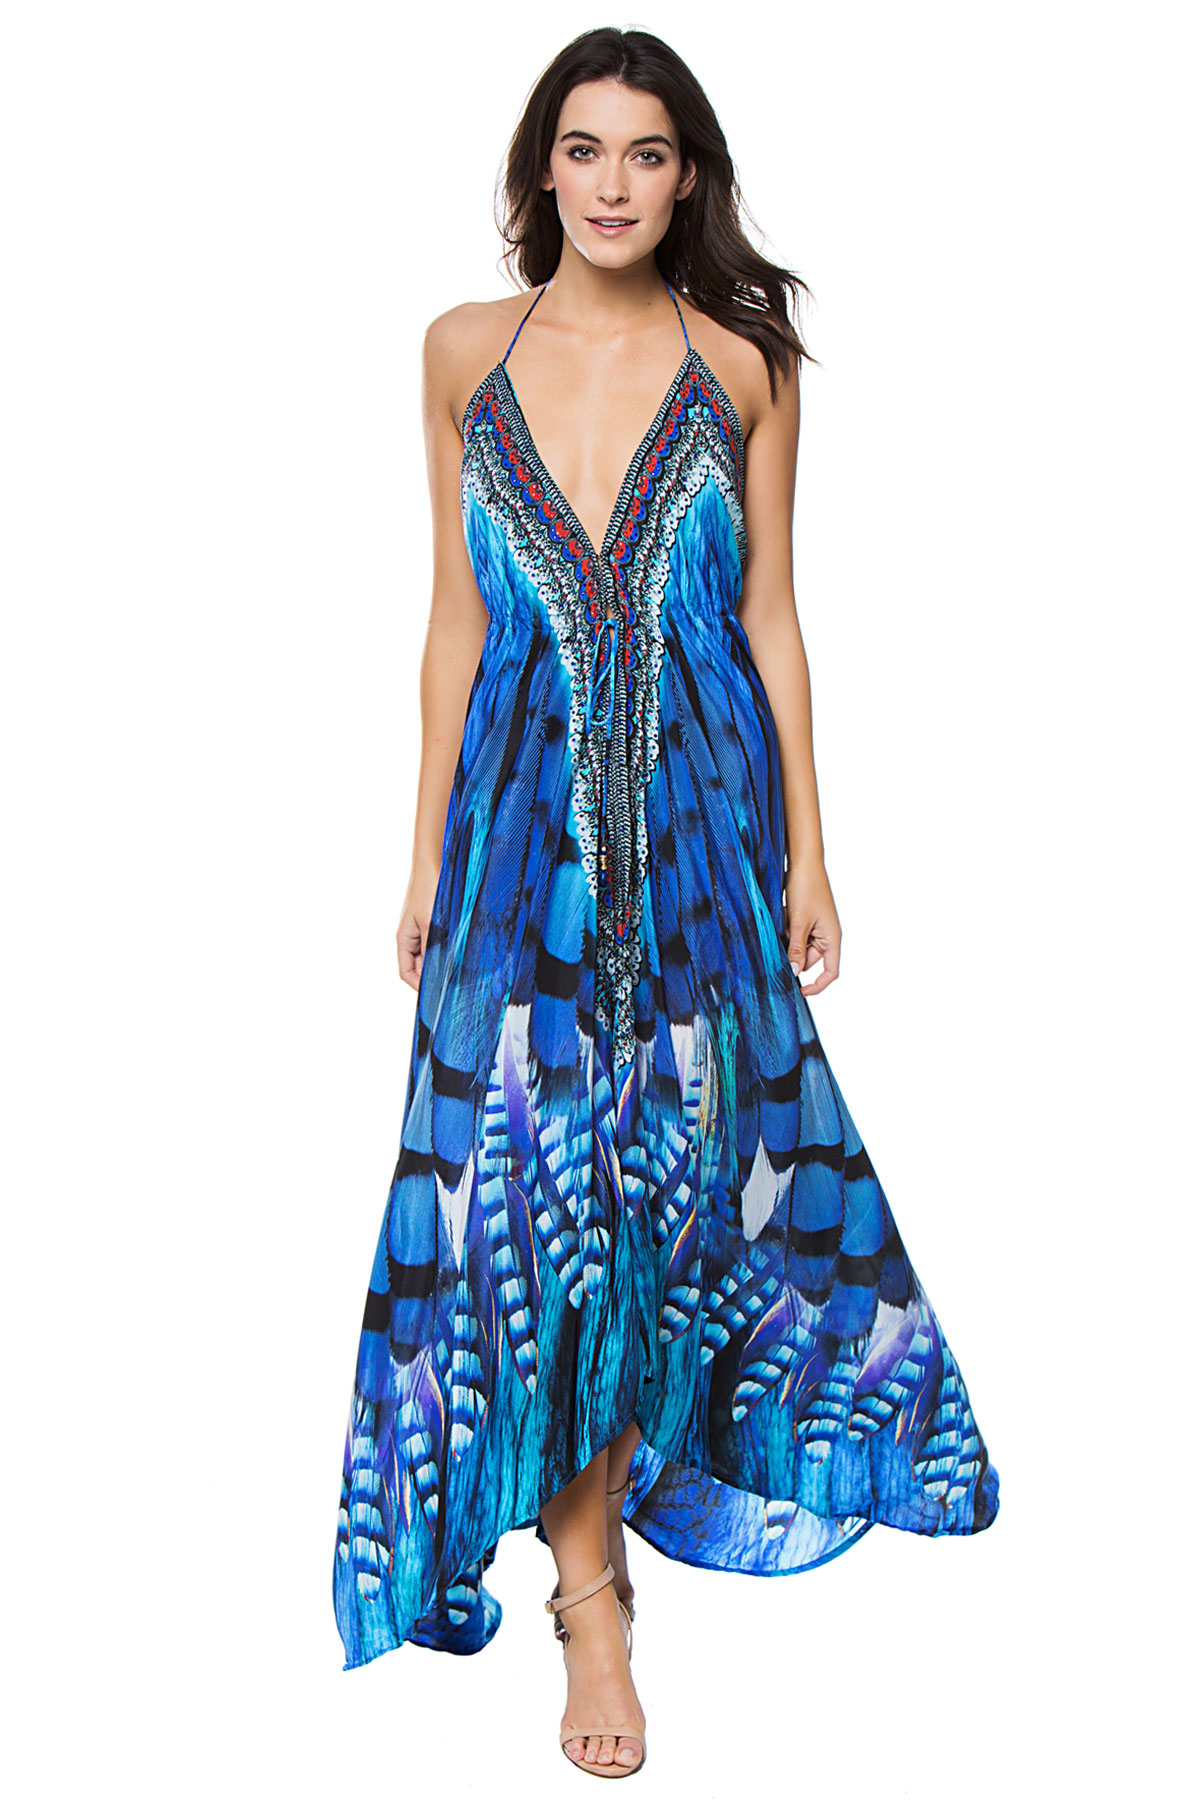 Feather Print Low Back Dress - Blue